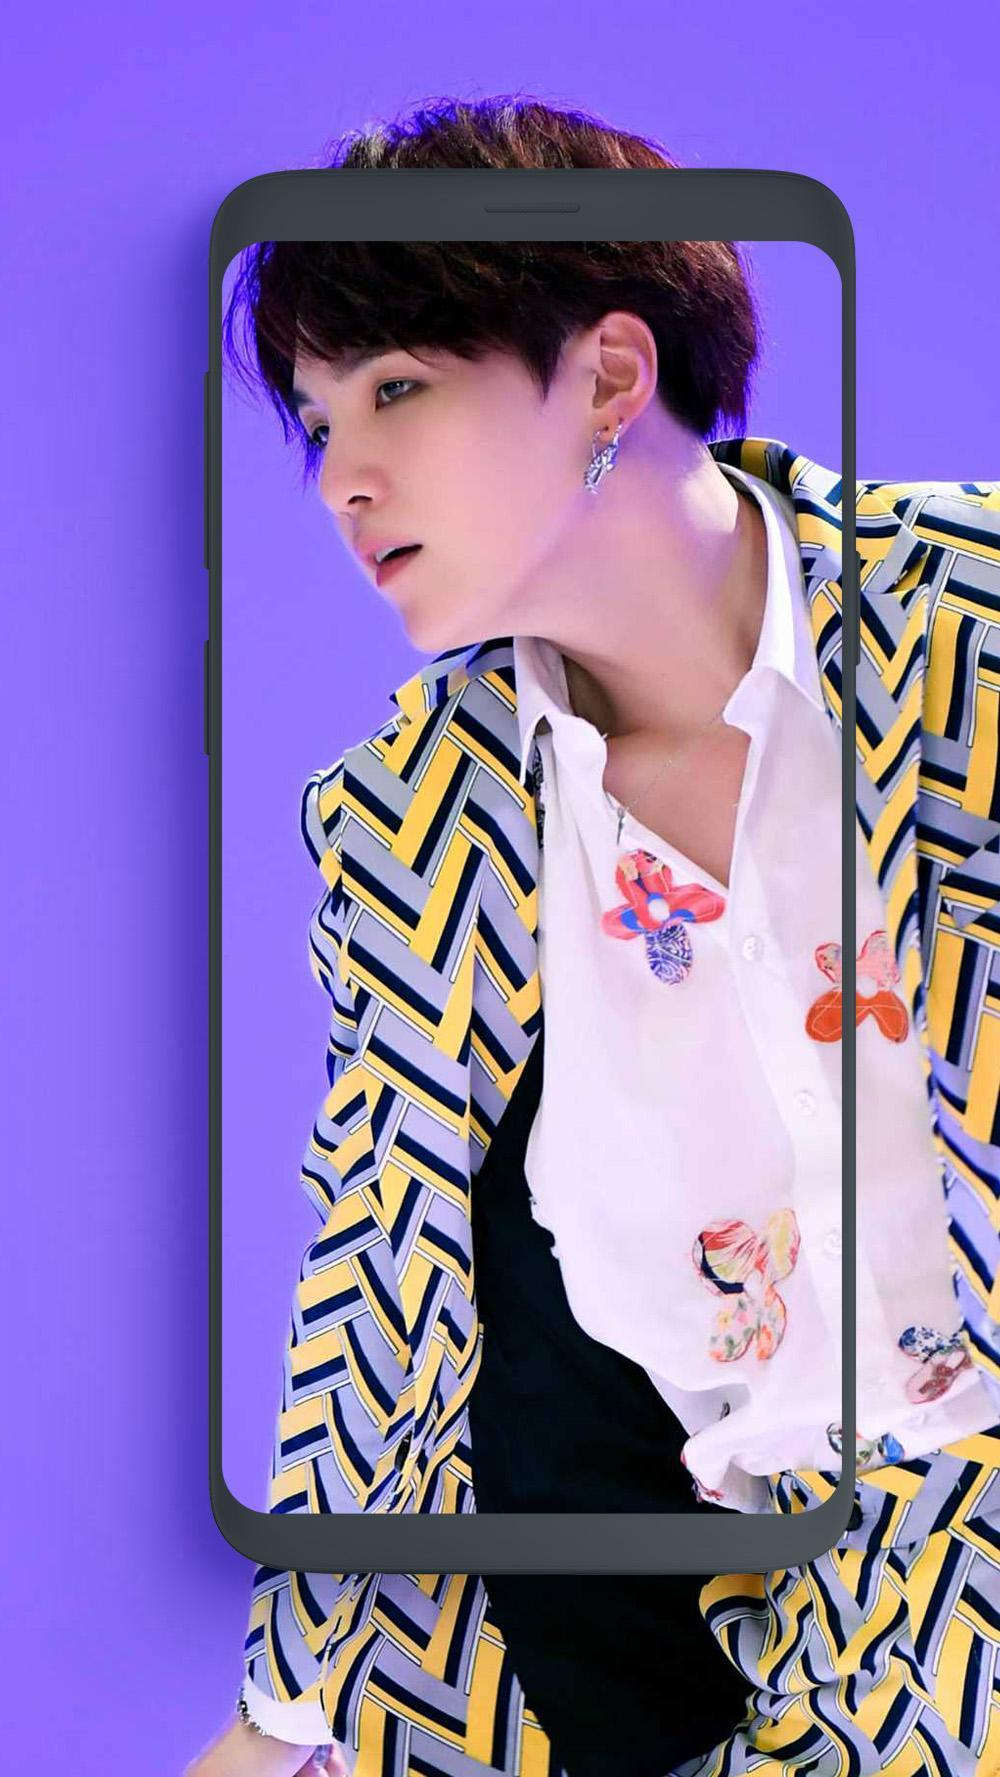 BTS Suga Wallpaper Kpop HD New for Android   APK Download 1000x1777